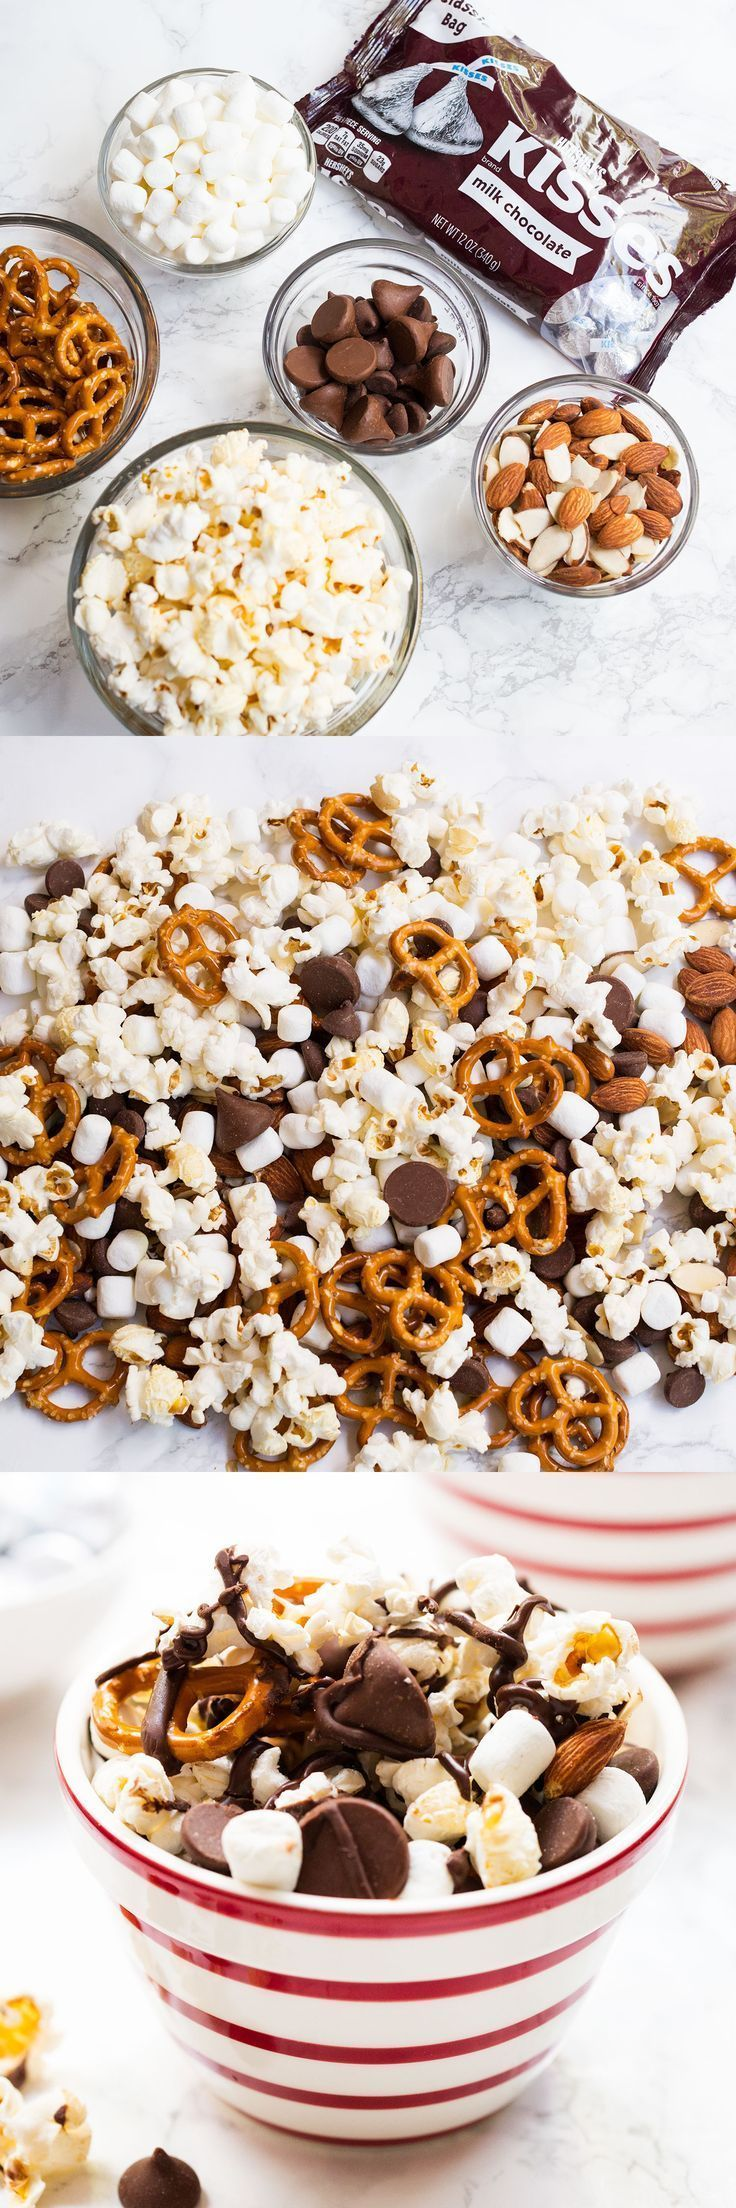 S'mores Mix Easy Dessert Recipe Easy desserts, Snack